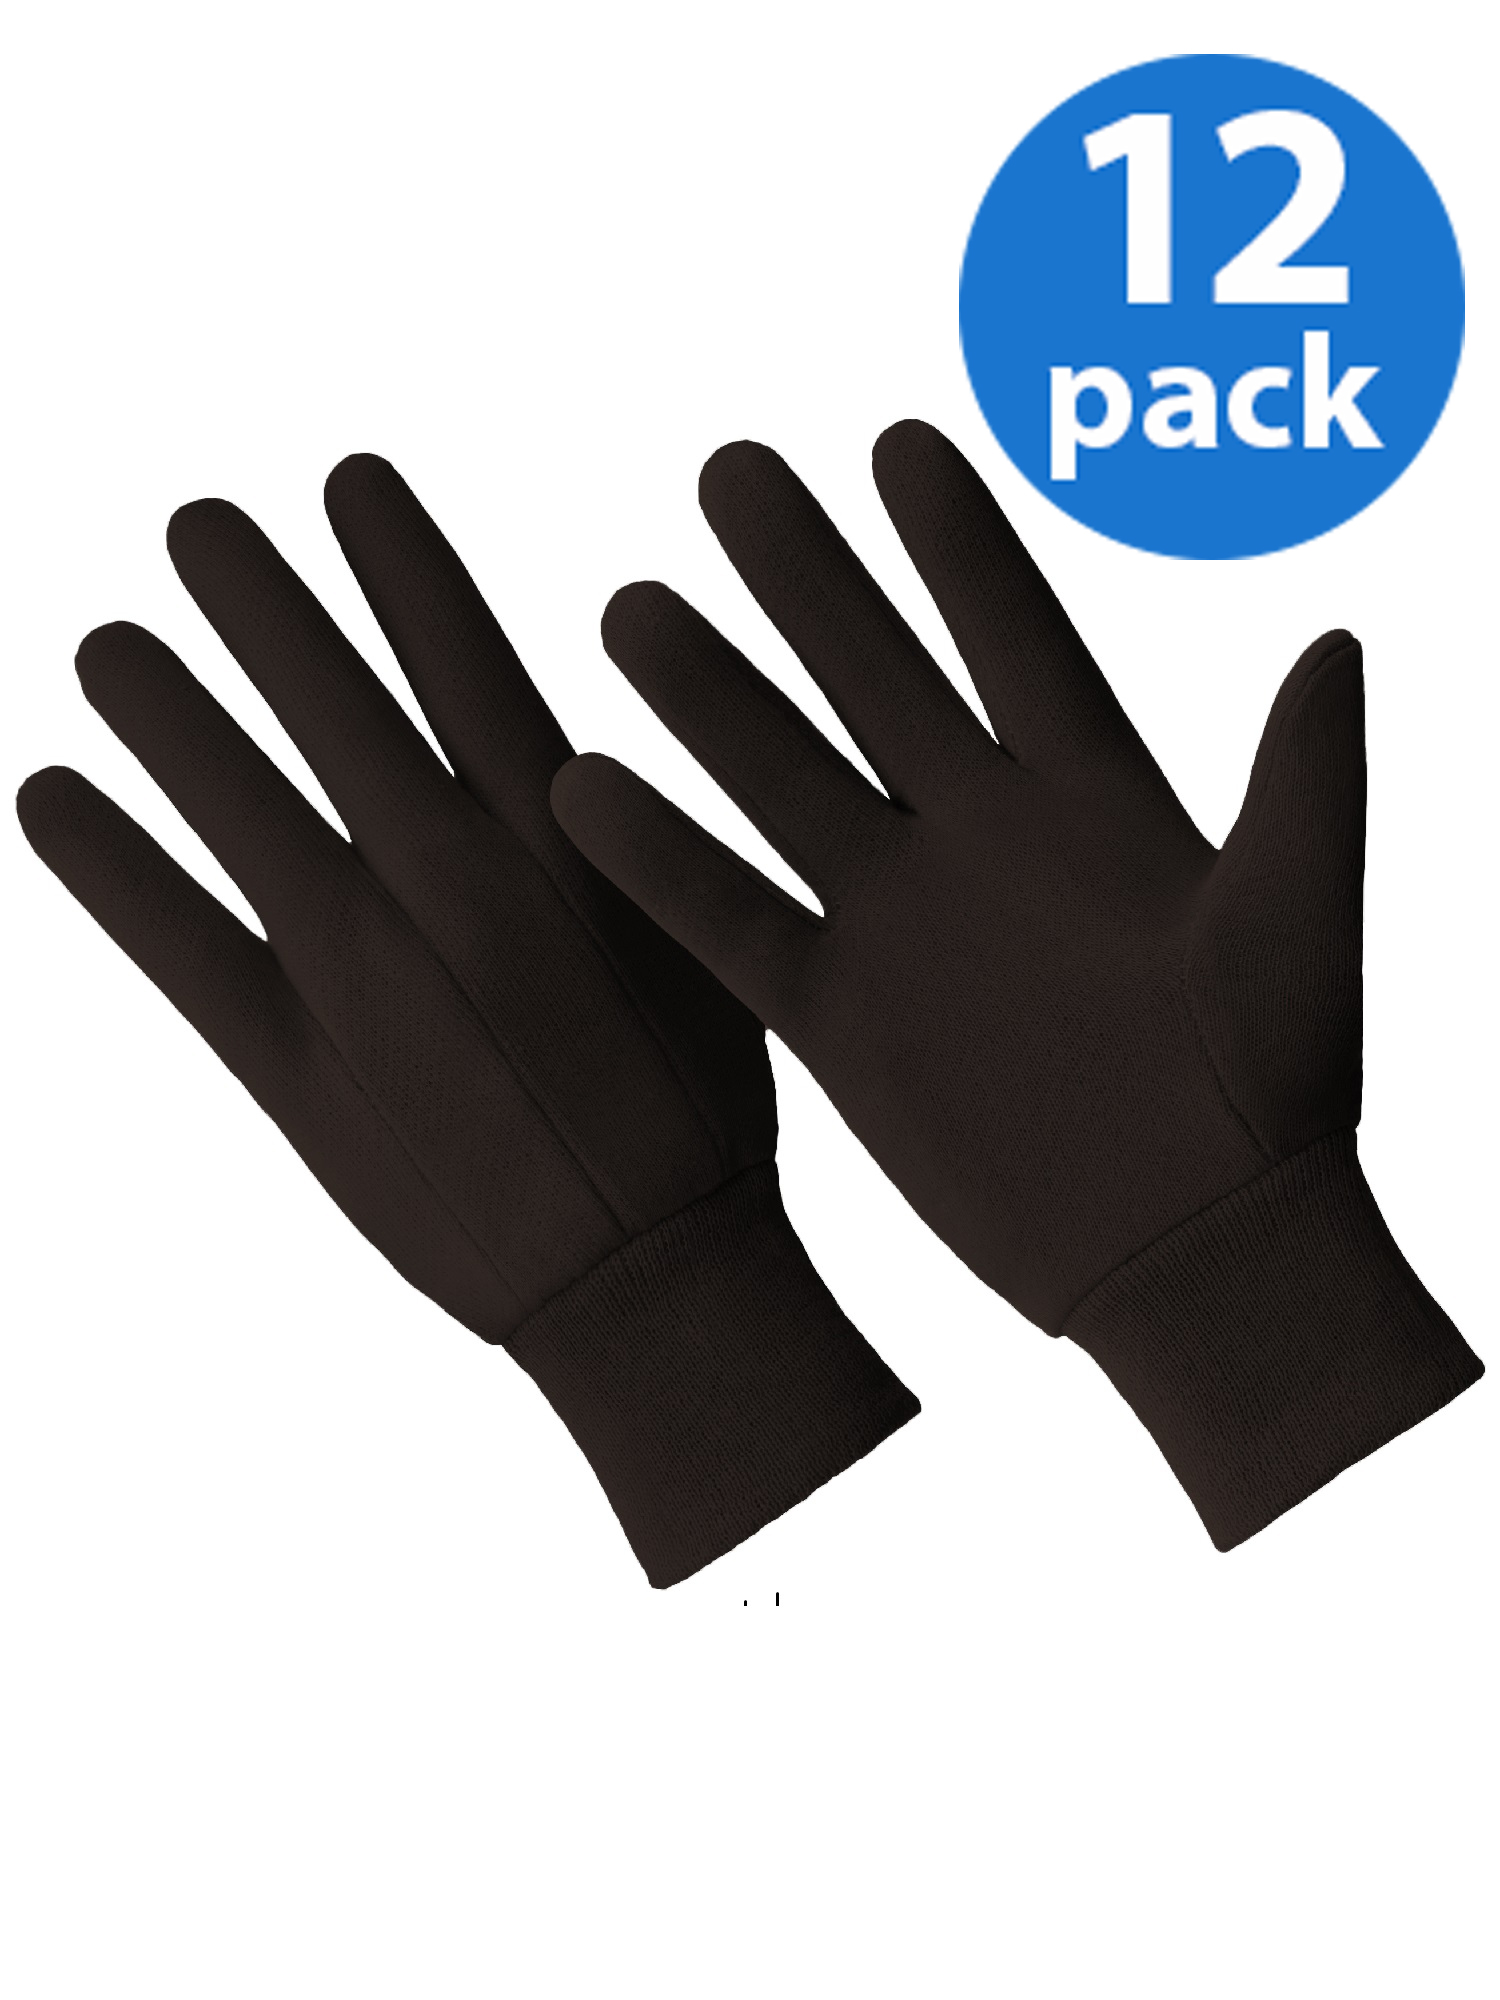 CT7000-L-12PK, 12 Pair Value Pack, Poly/Cotton Blend Brown Jersey Glove